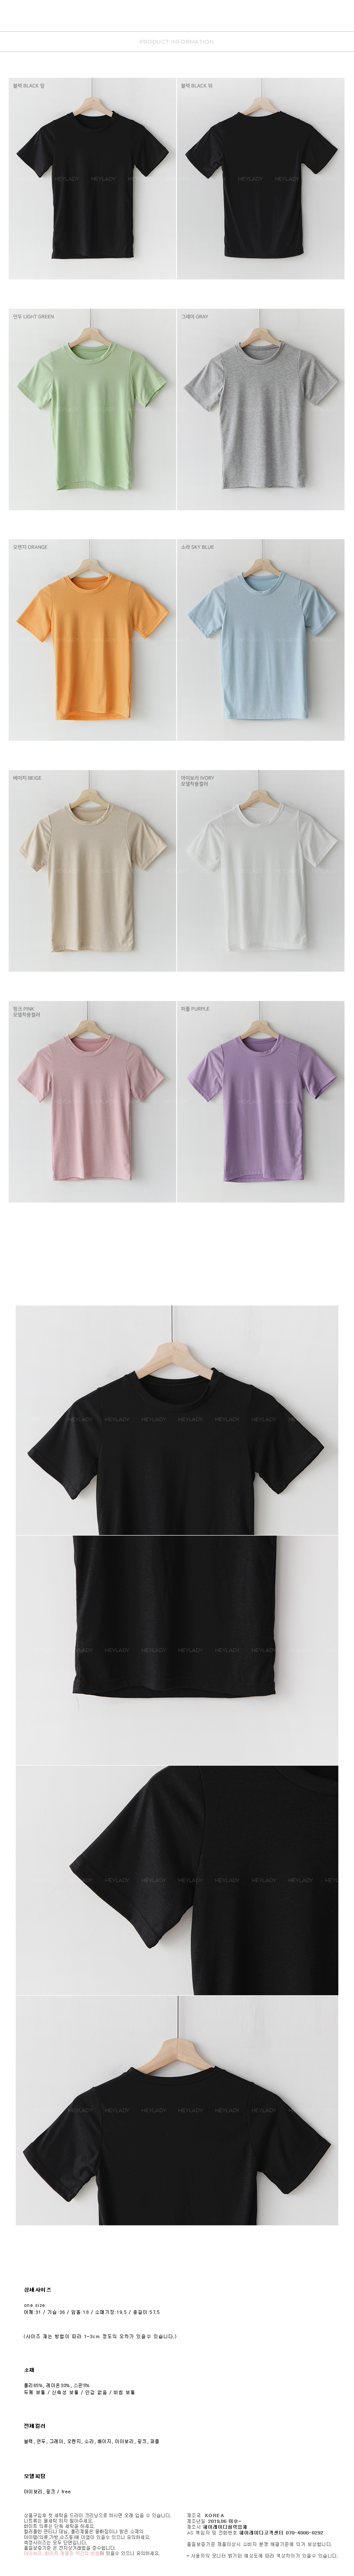 Thank you Round simple t-shirt